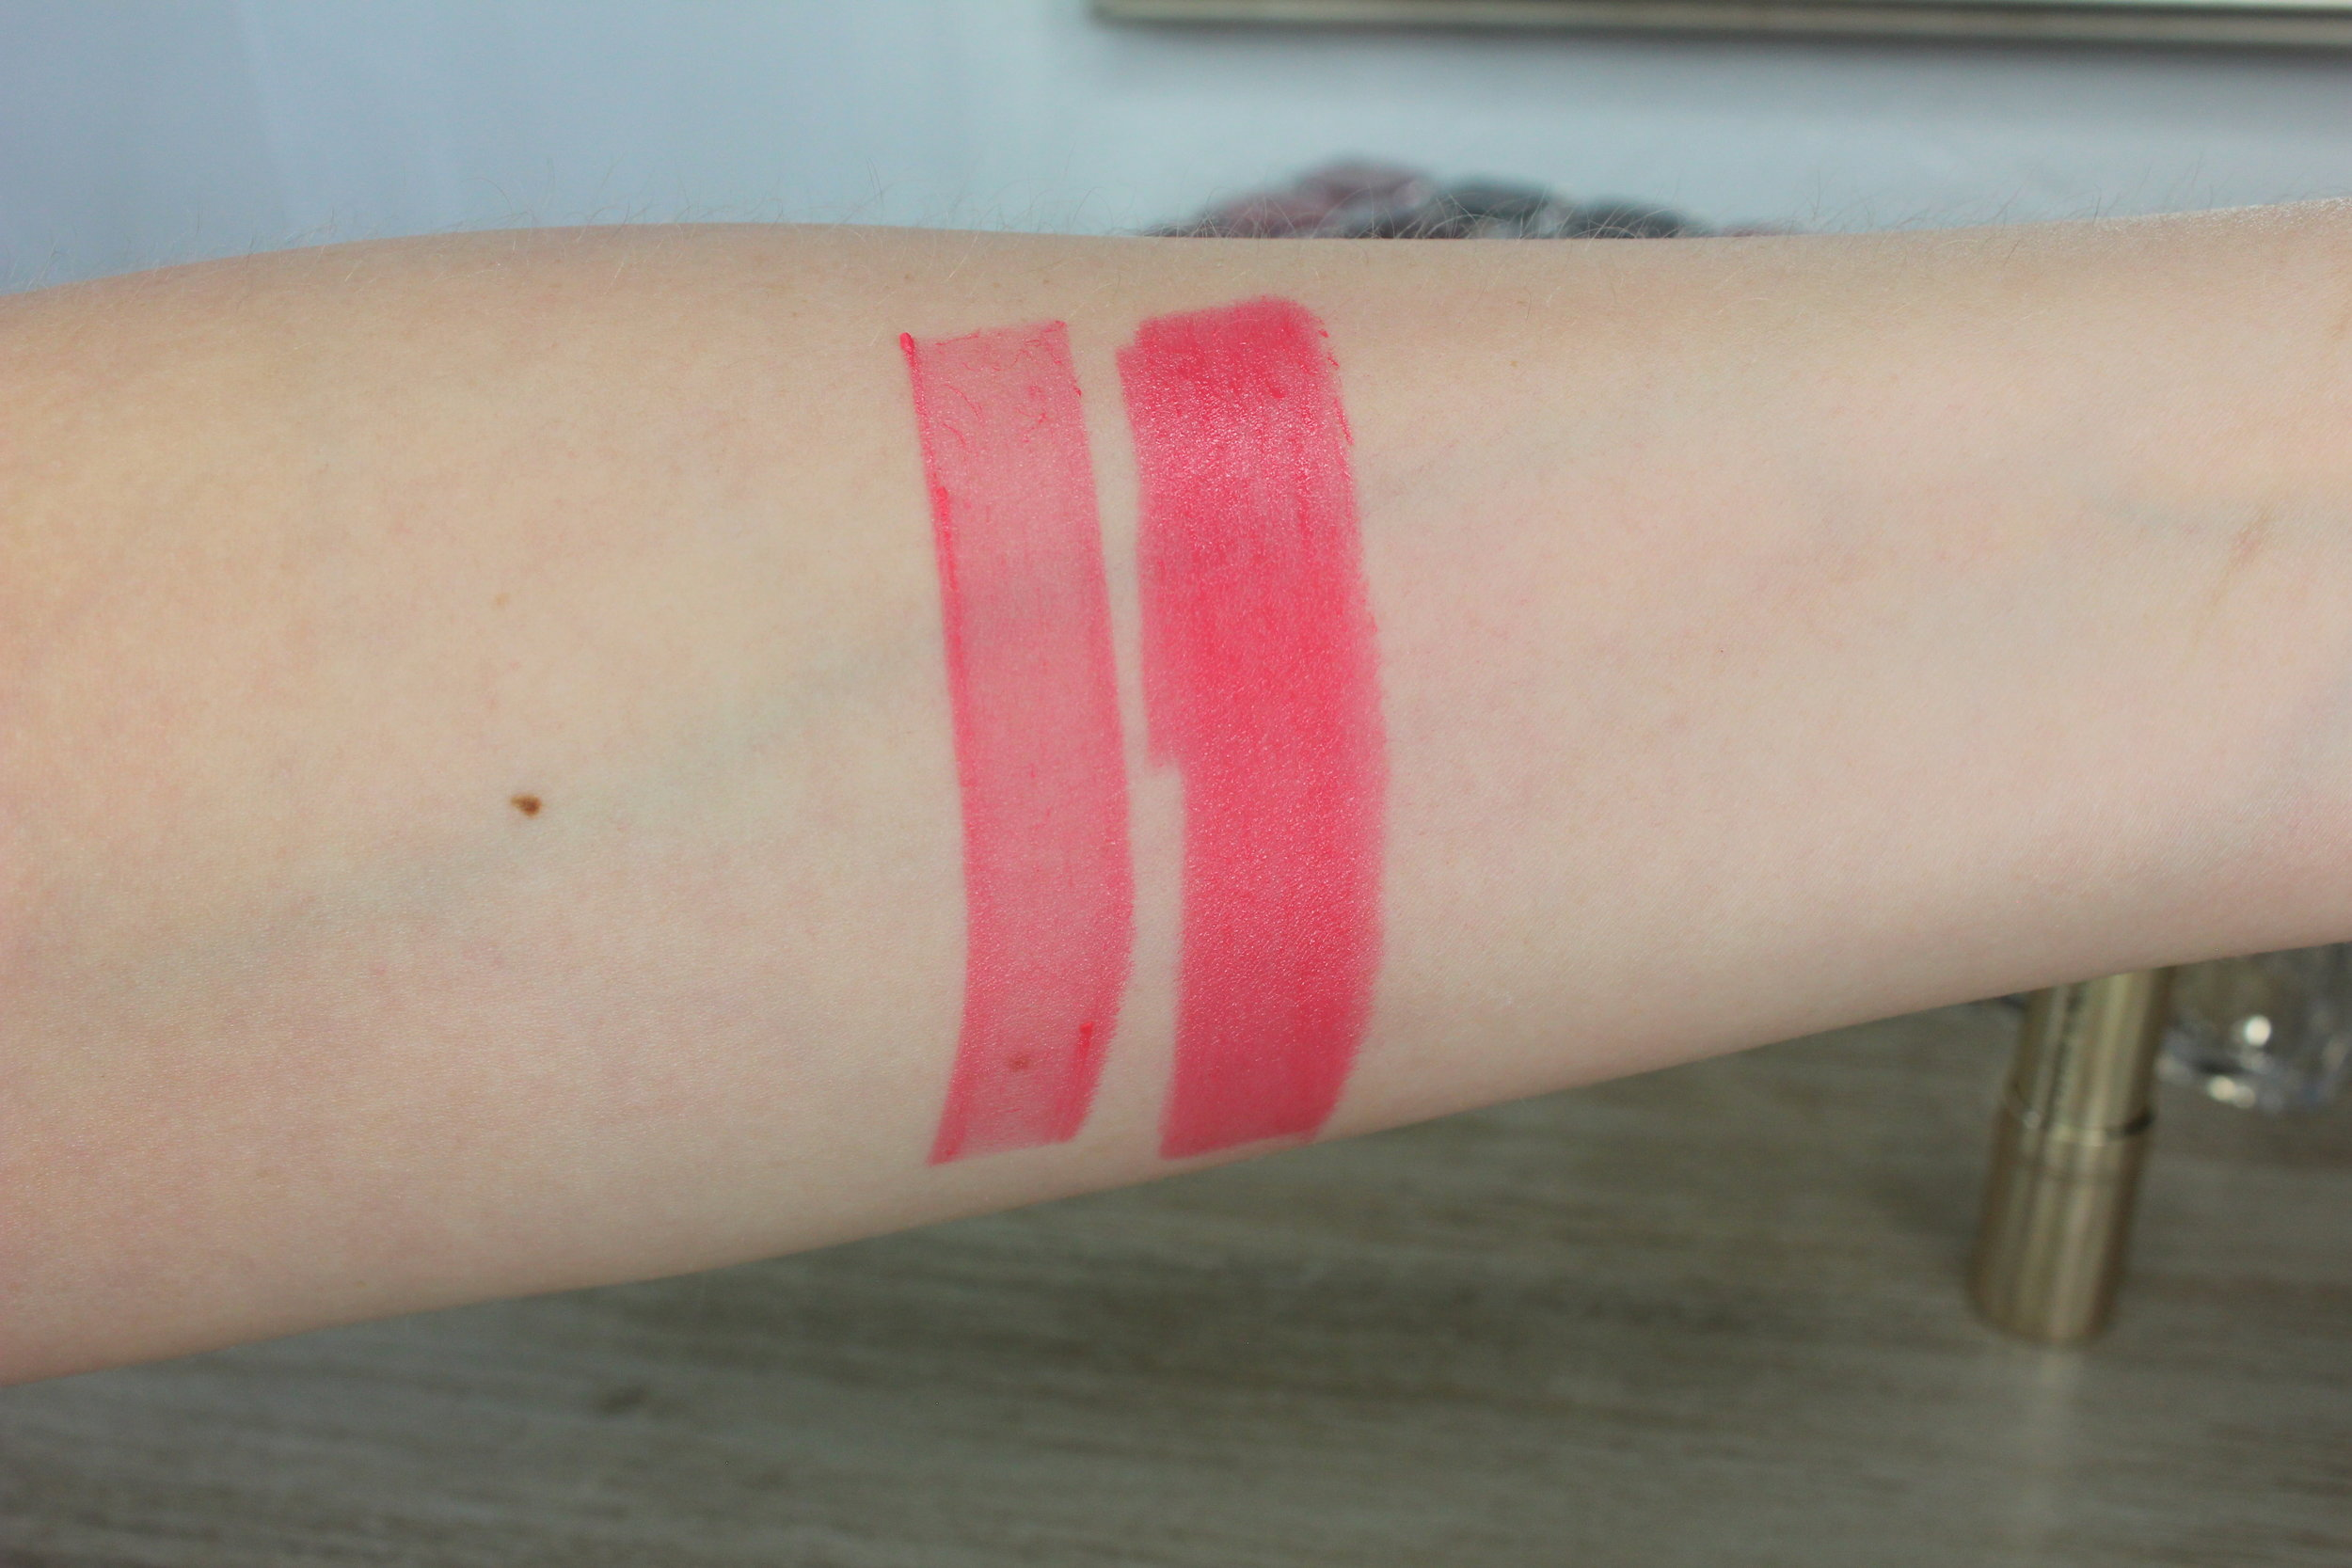 Estee Lauder Radical Chic (250) swatch